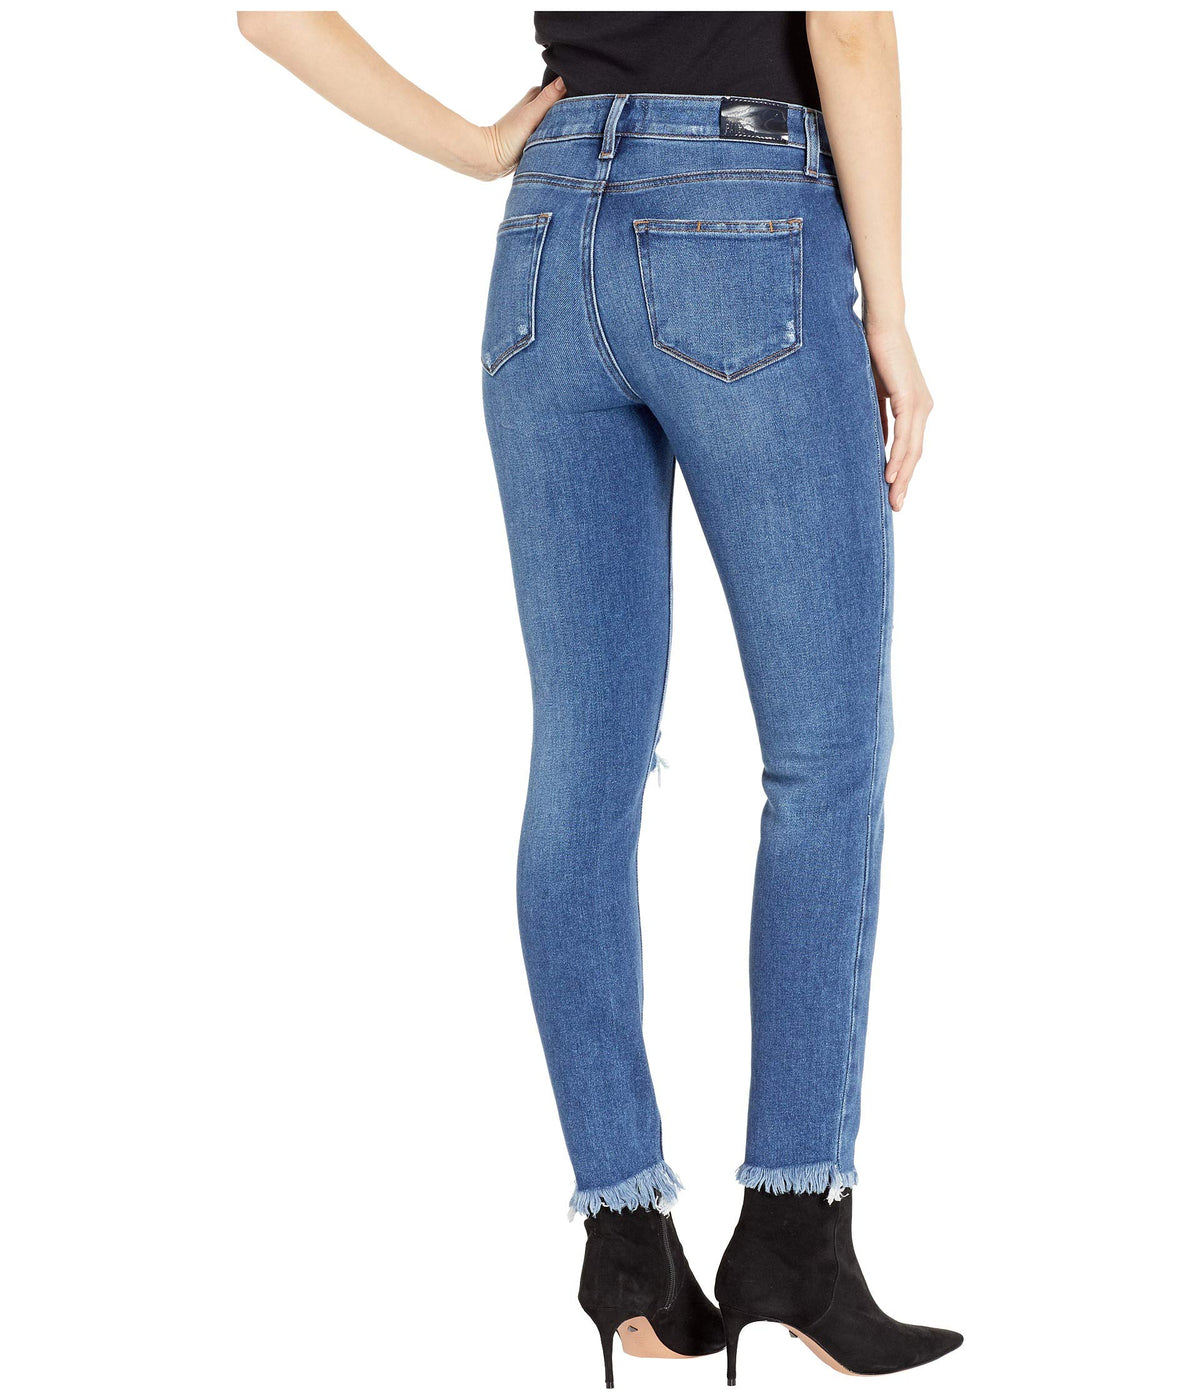 Hoxton Ankle Jeans w/ Heavy Fray Hem in Alessio Destructed